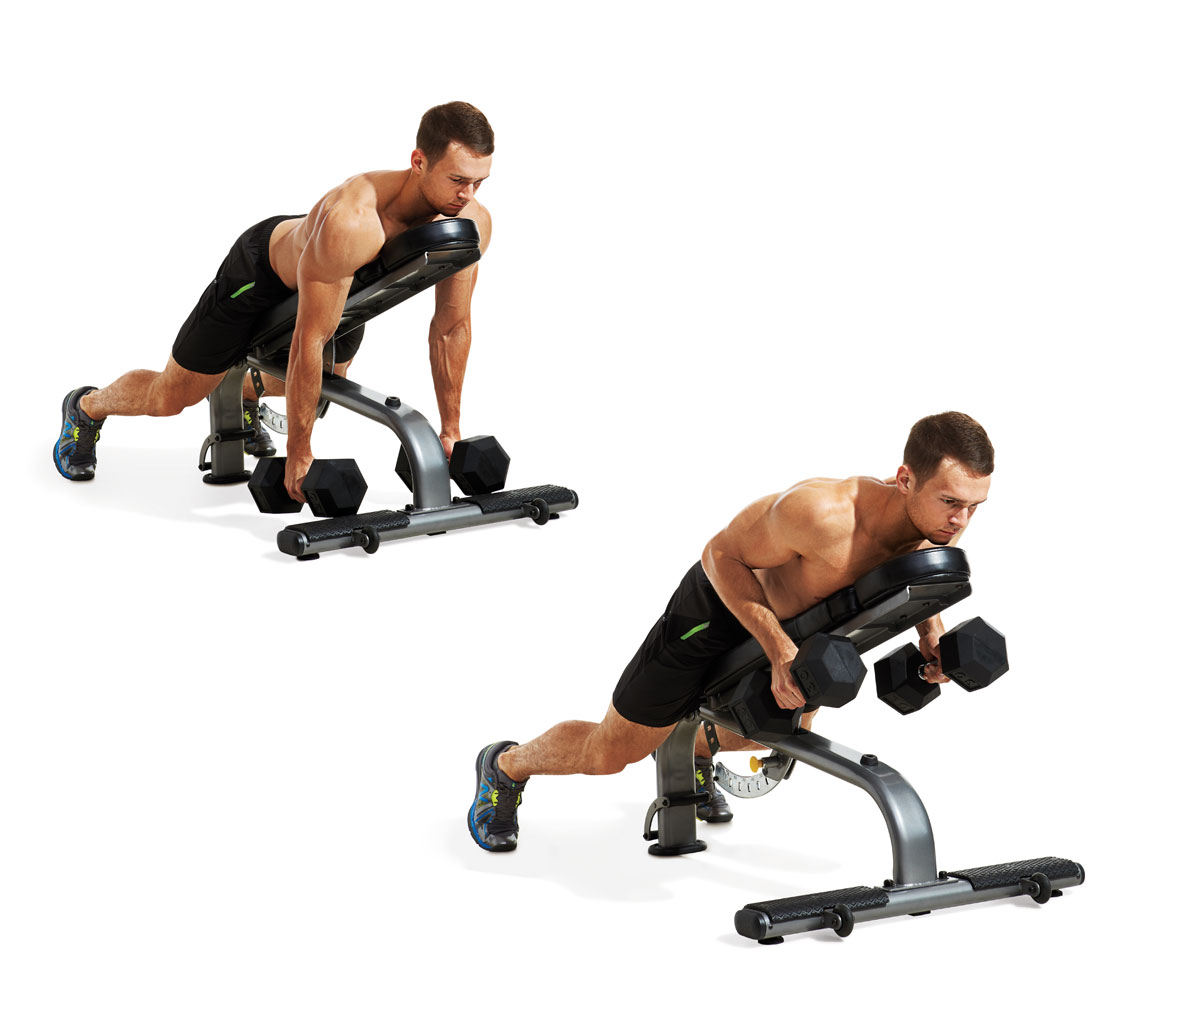 25 brutal workout finishers for rapid fat loss and muscle